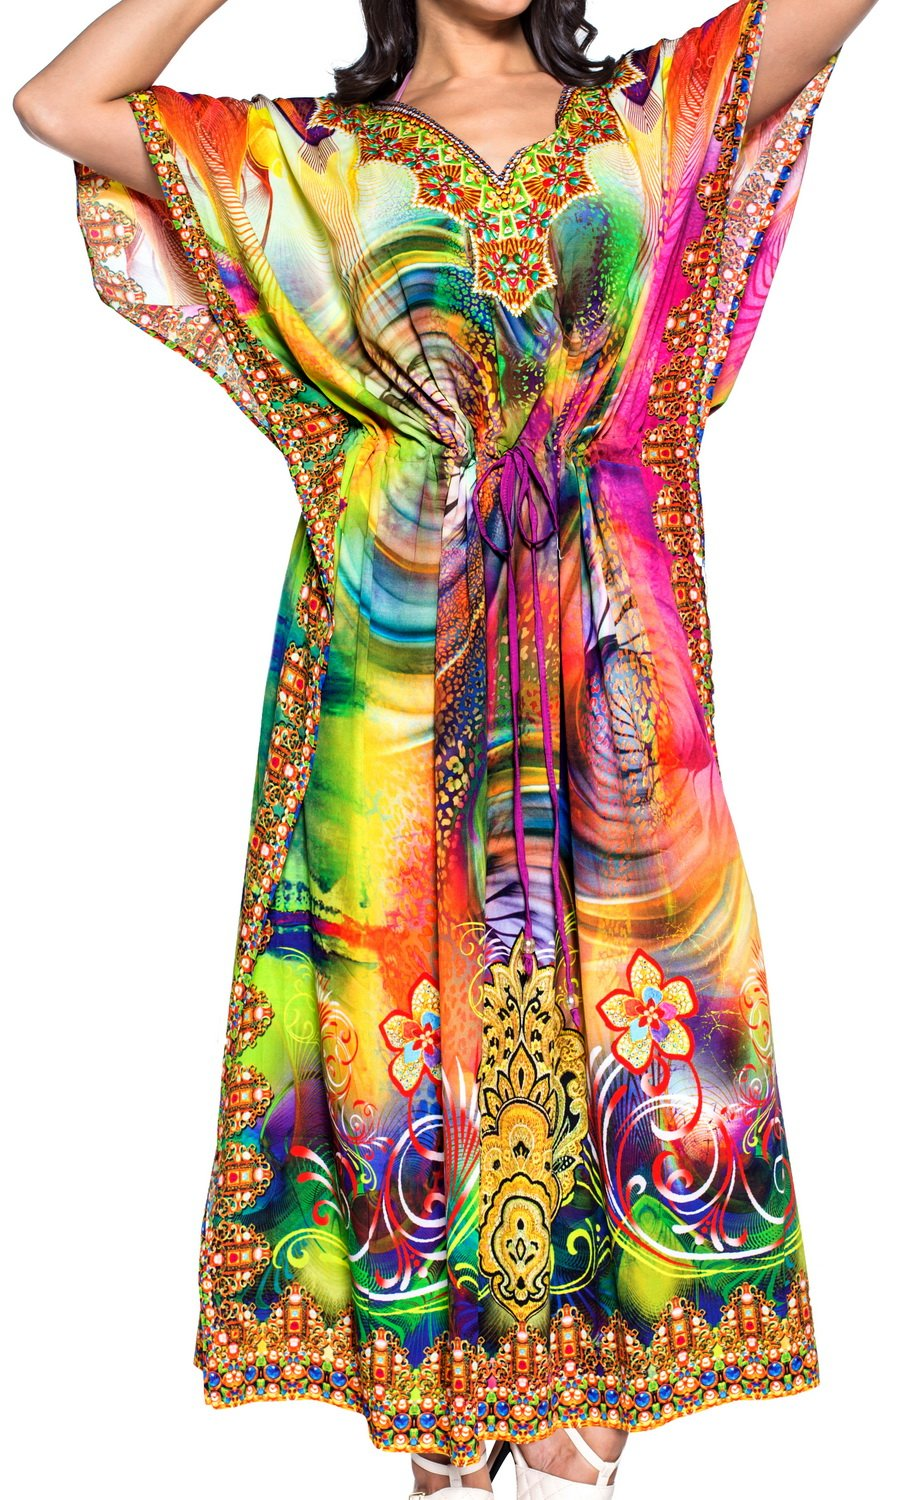 LA LEELA Soft Fabric Digital HD Print Casual Dress Girls OSFM 14-22 [L-3X] Multicolor_3575